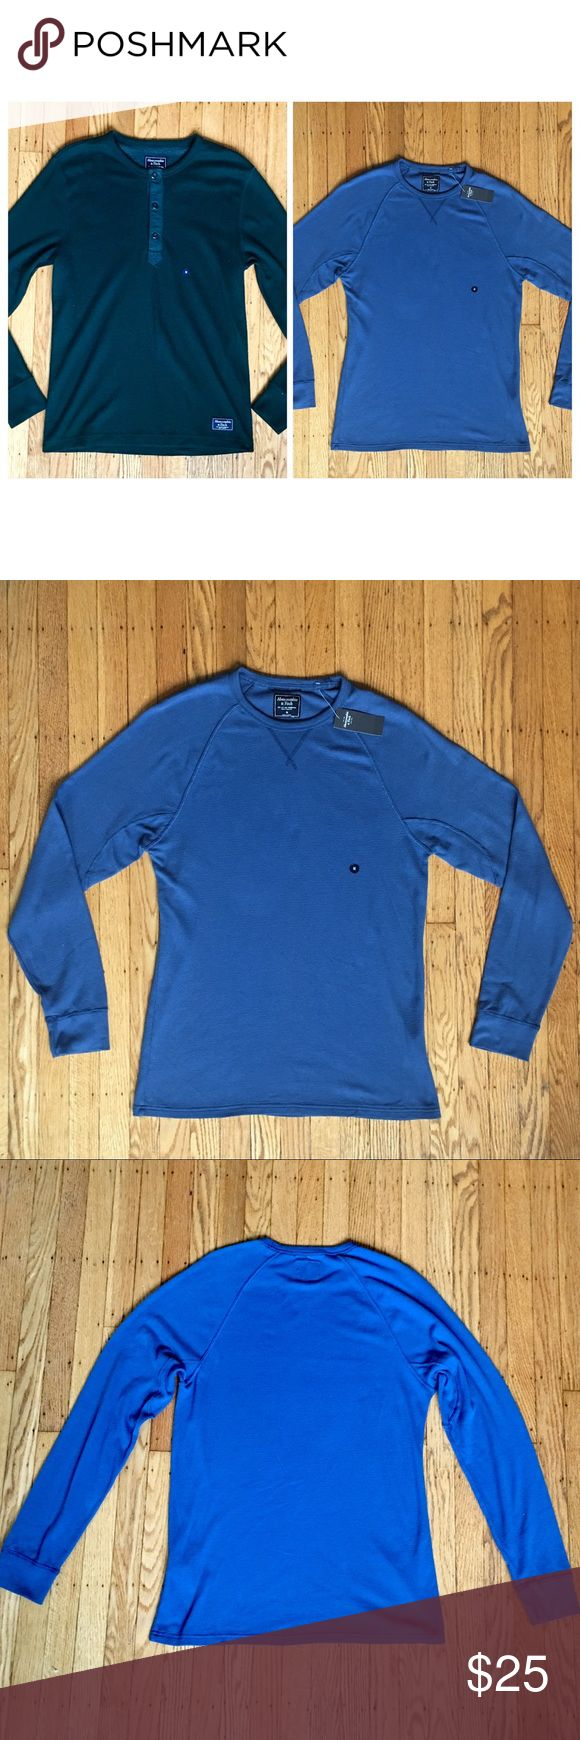 Abercrombie Men's Medium Long Sleeve Henley Bundle Two BNWT Abercrombie Long Sleeve Henleys. Both Waffle Knit Texture. Both Size Medium. Abercrombie Classics New With Tags. Thanks ! Abercrombie & Fitch Shirts Tees - Long Sleeve